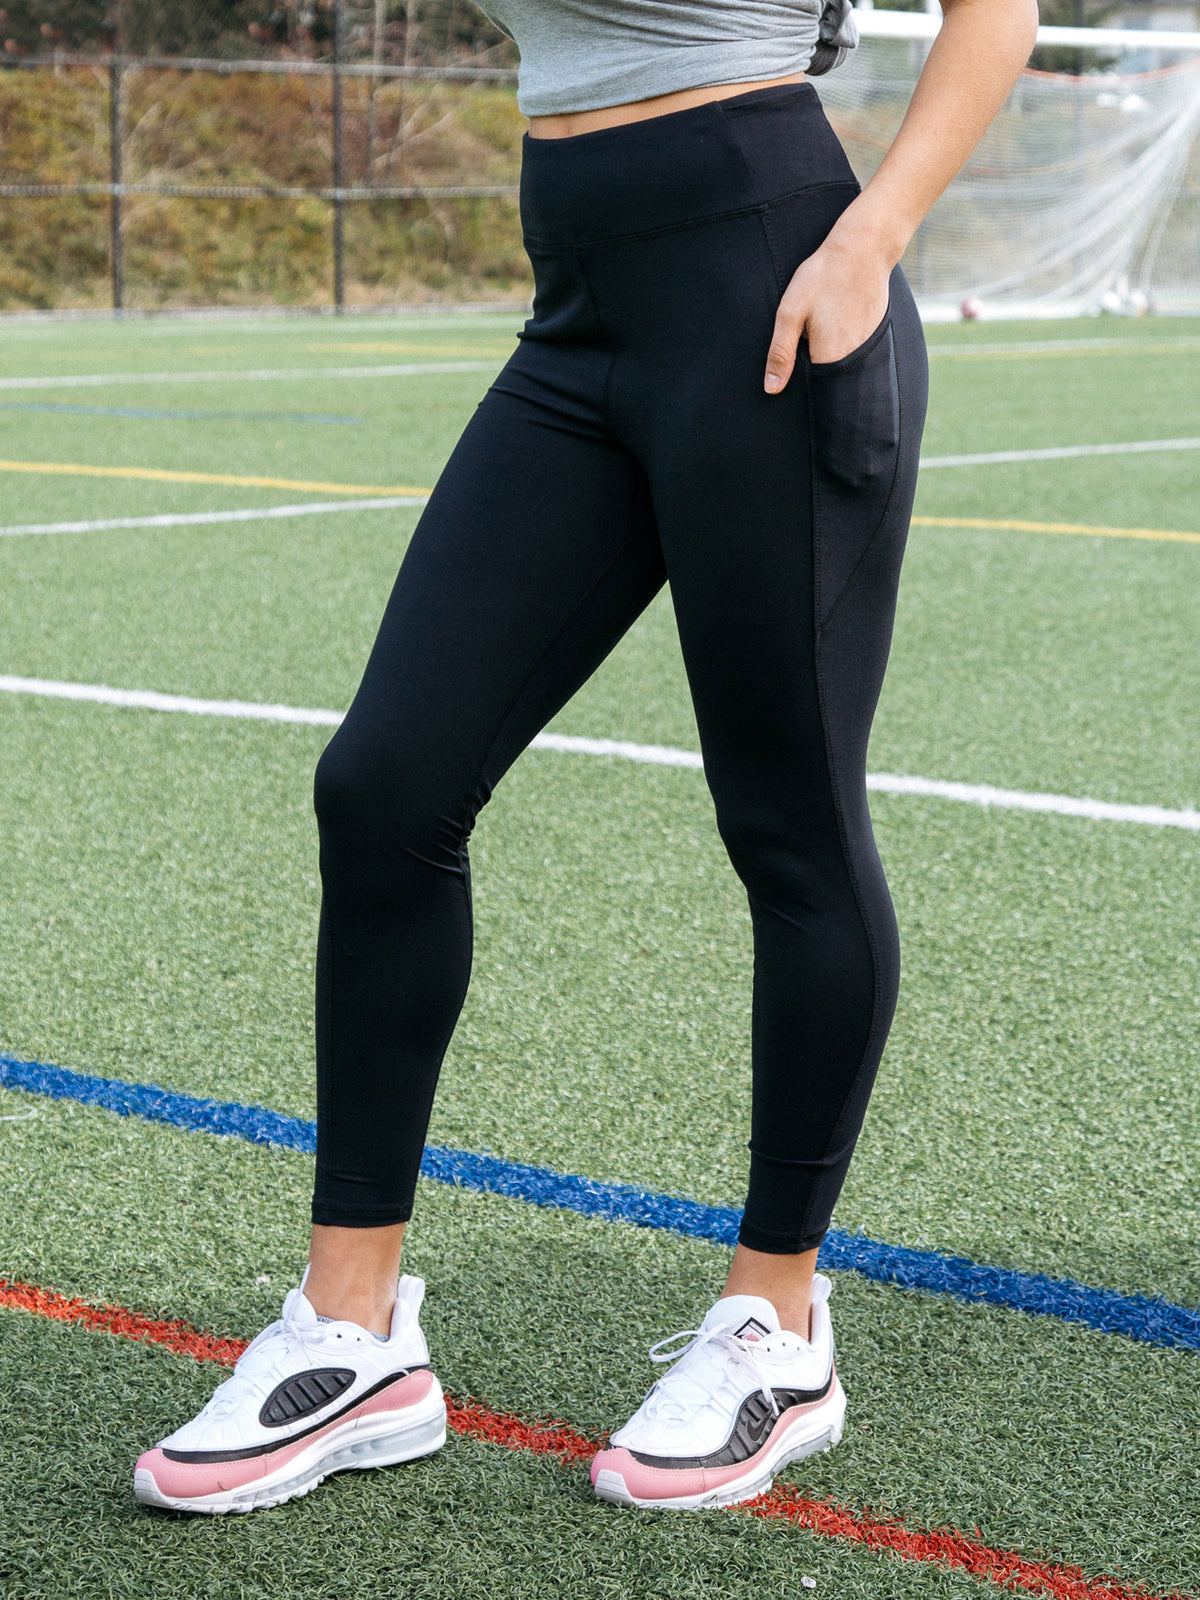 Loralie Leggings